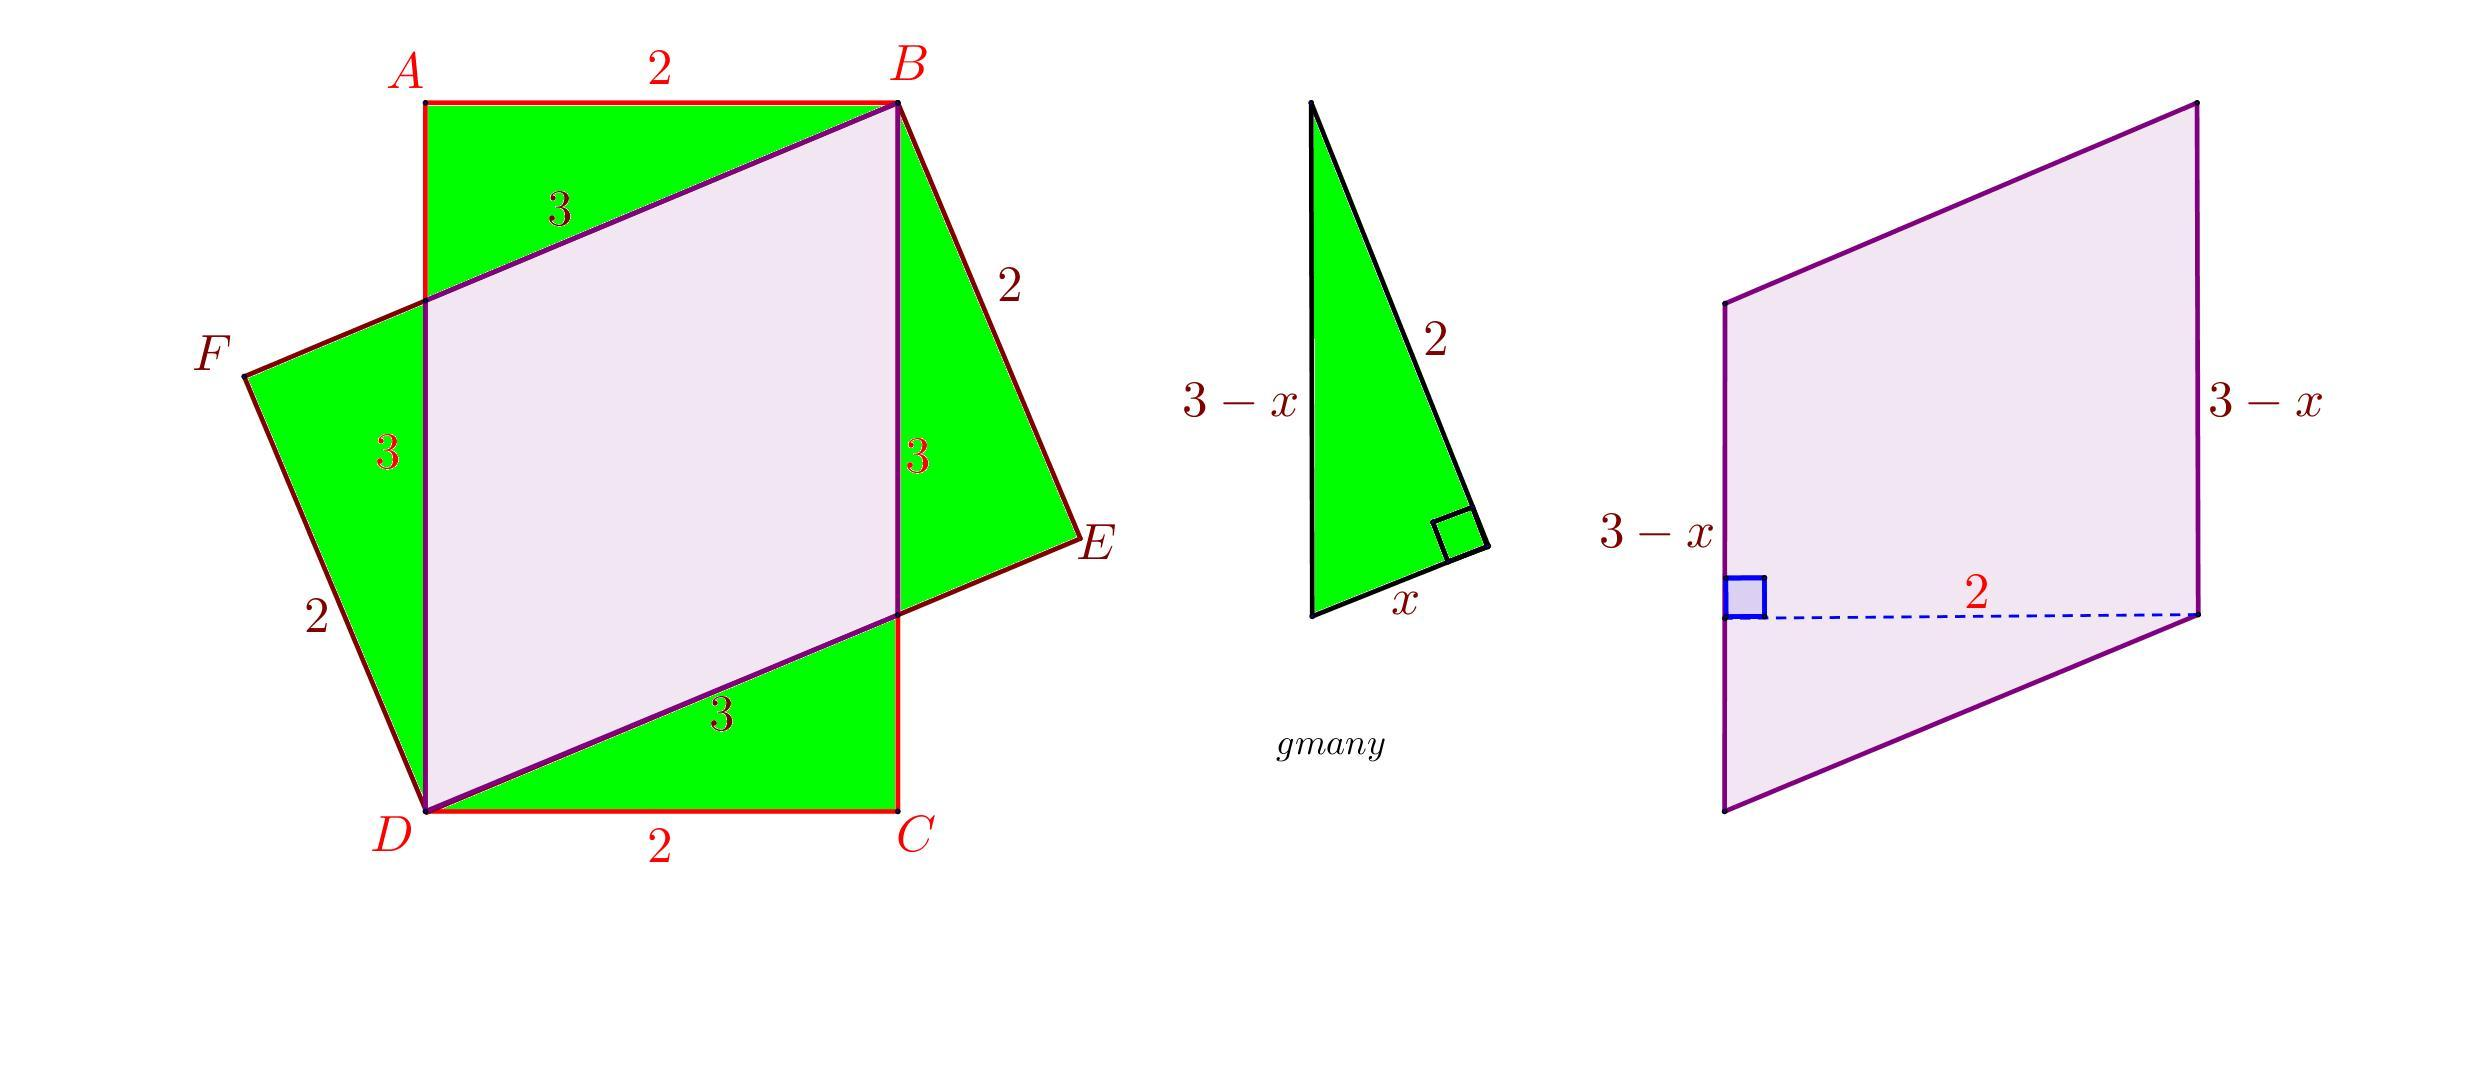 Two Tex 2 Times 3 Tex Rectangles Are Drawn As Shown